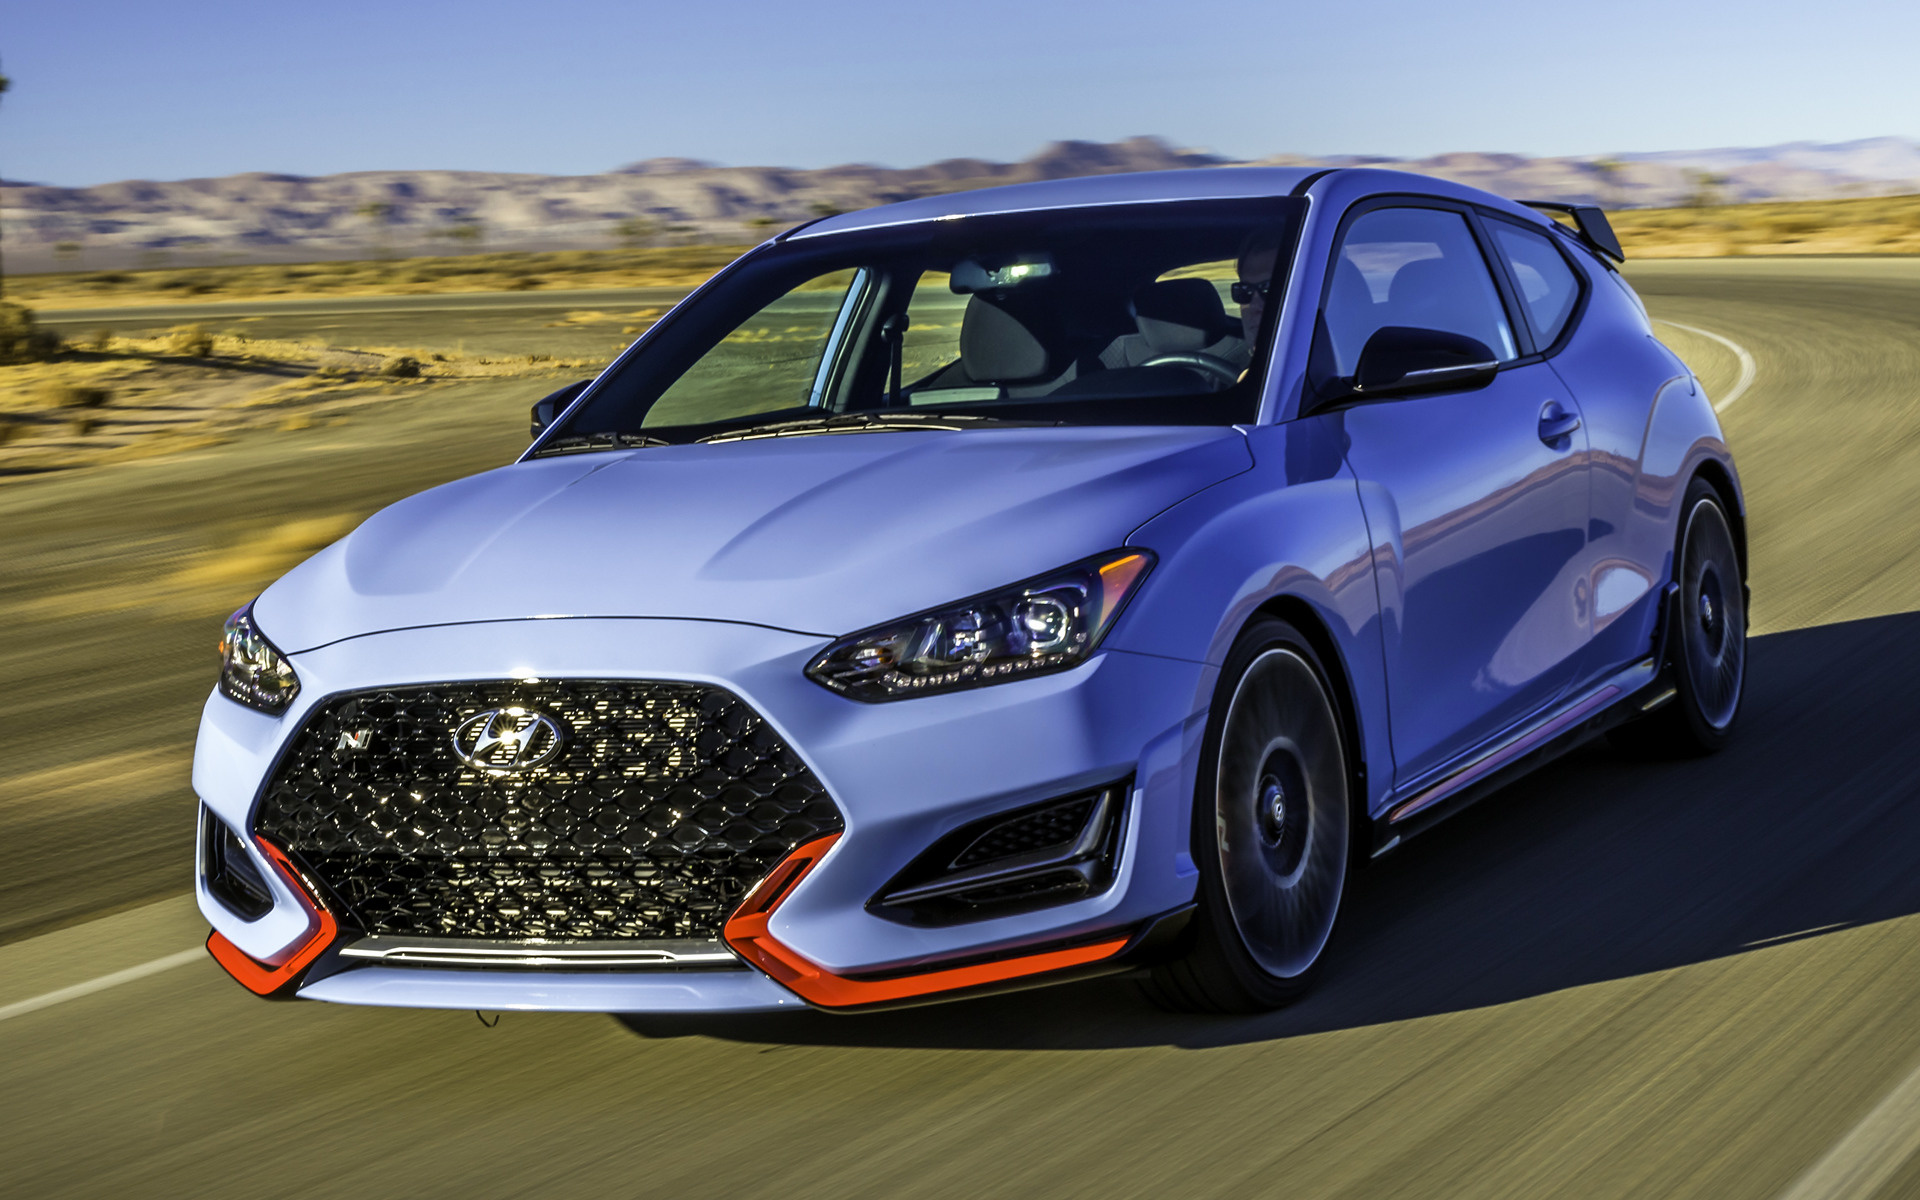 2019 Hyundai Veloster N US   Wallpapers and HD Images Car Pixel 1920x1200